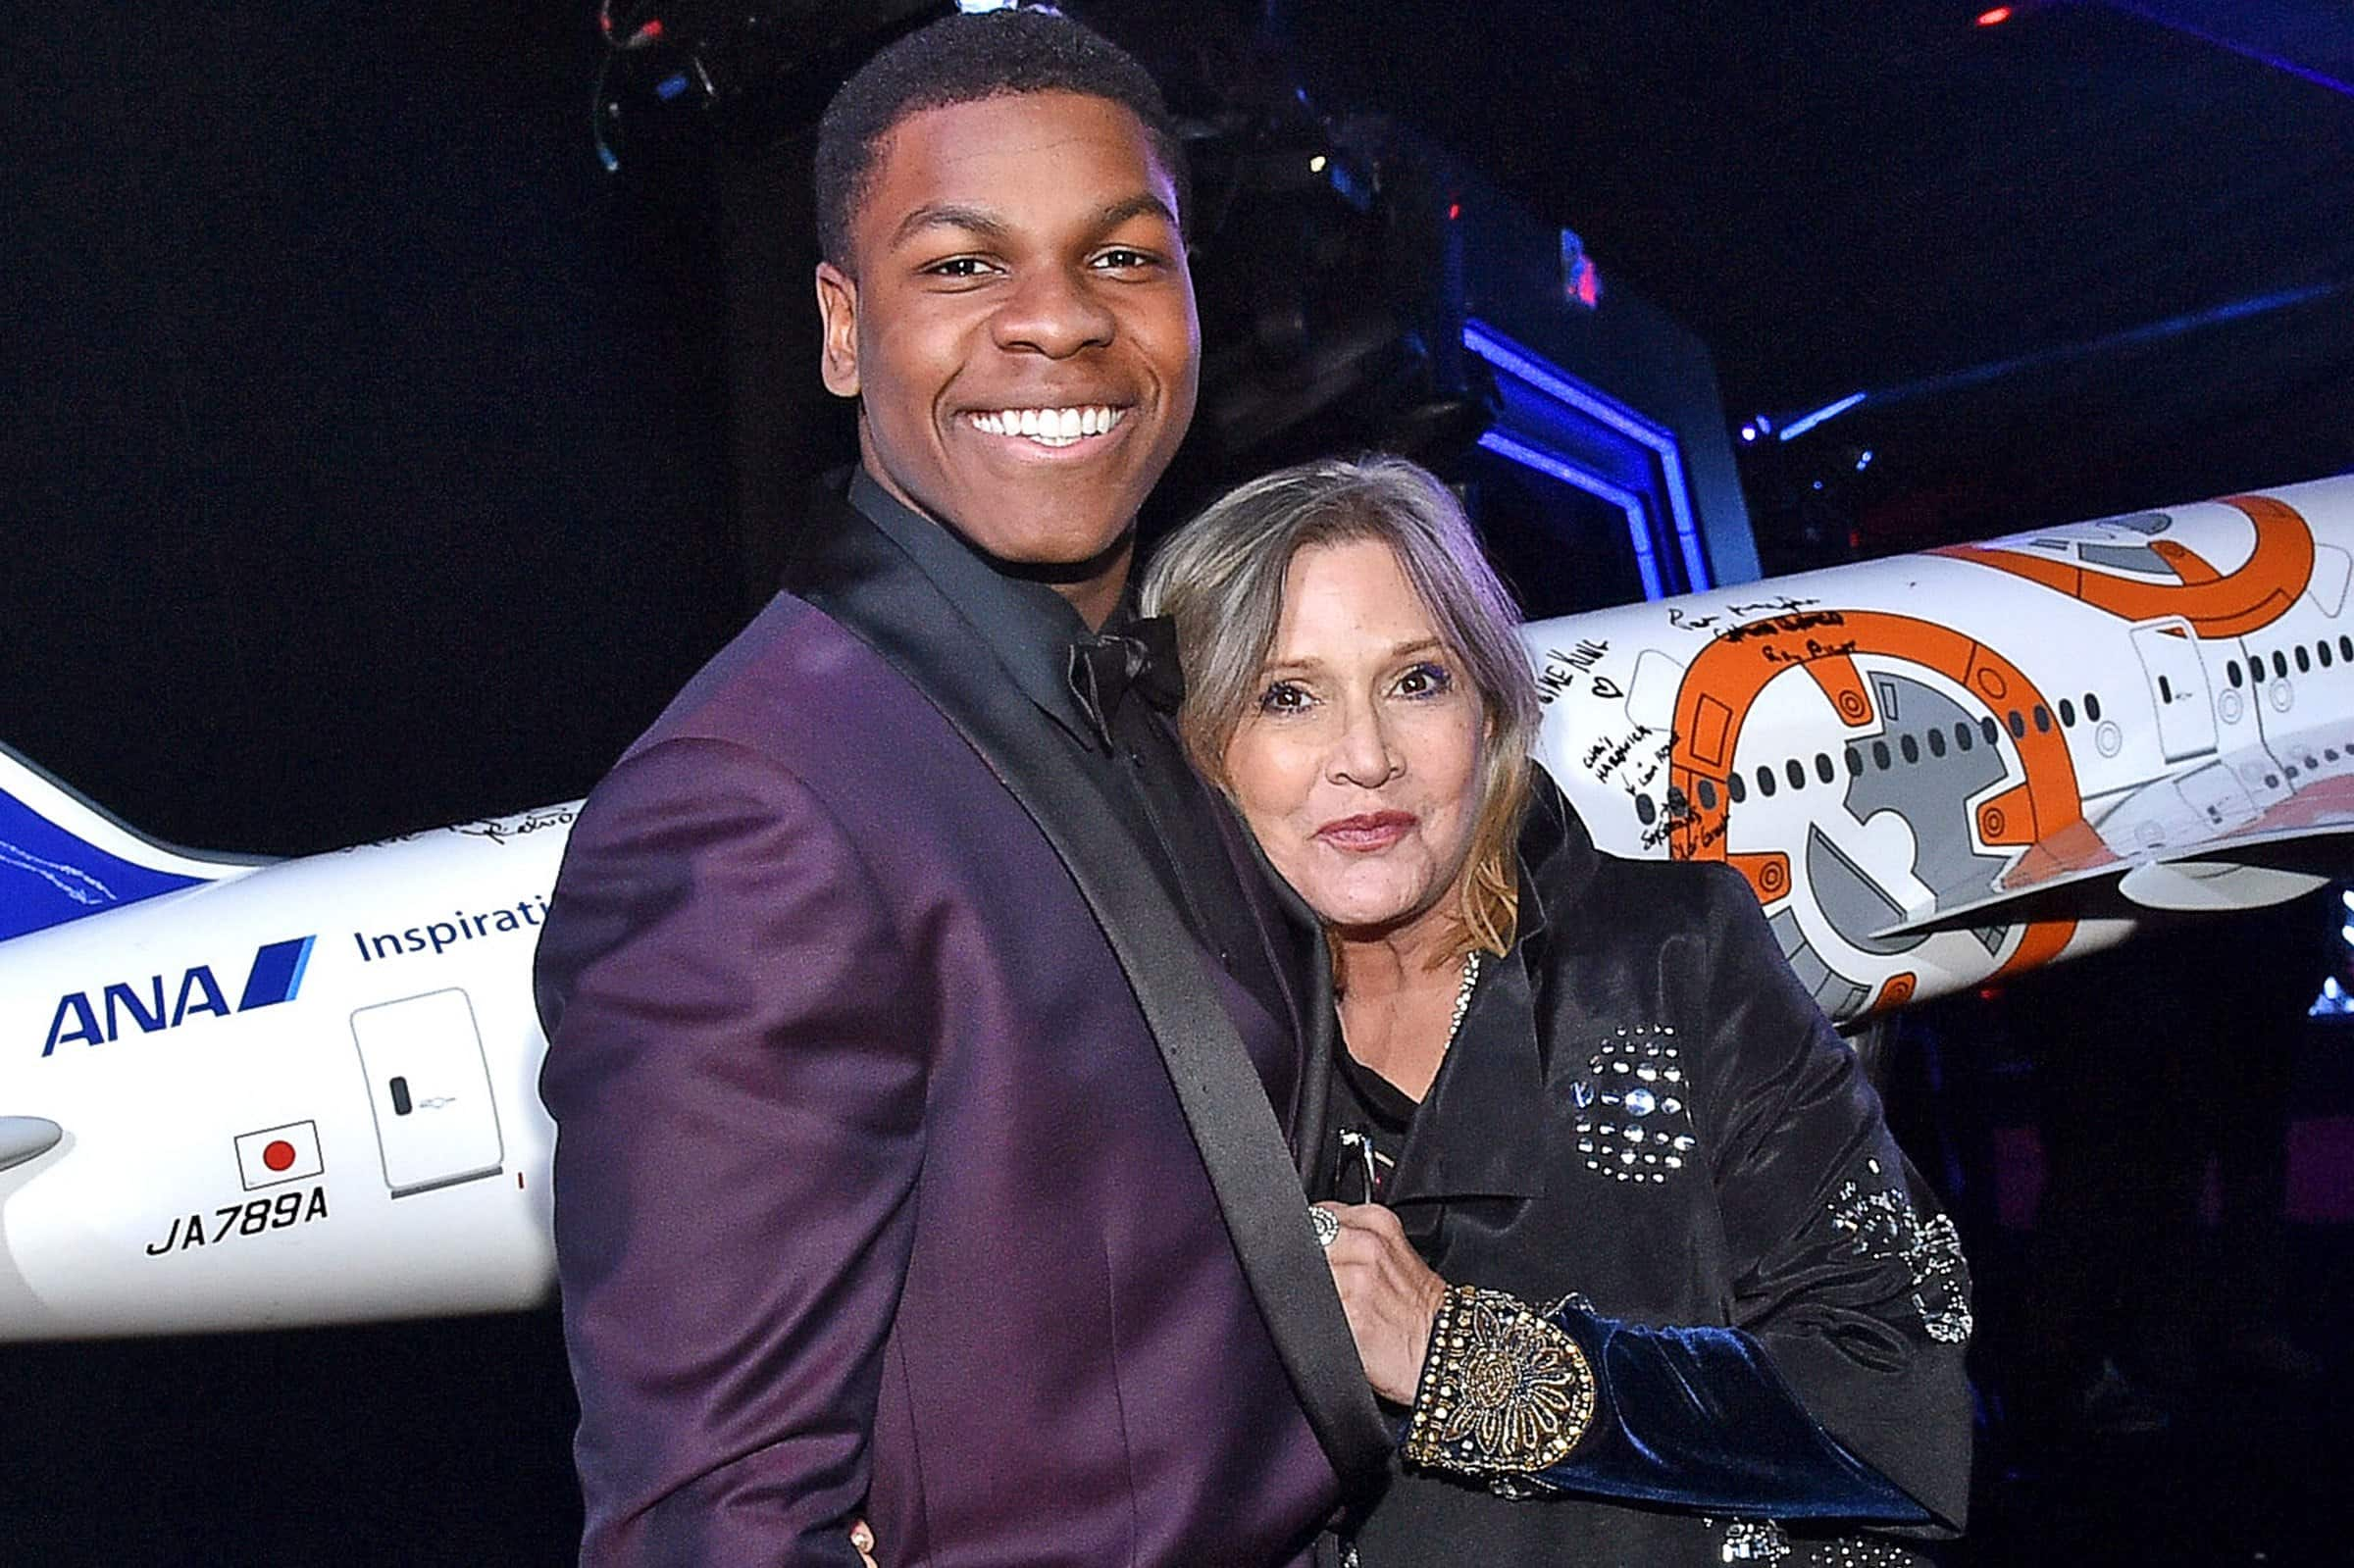 John Boyega Talks About Carrie Fisher's Role In Star Wars: Episode VIII